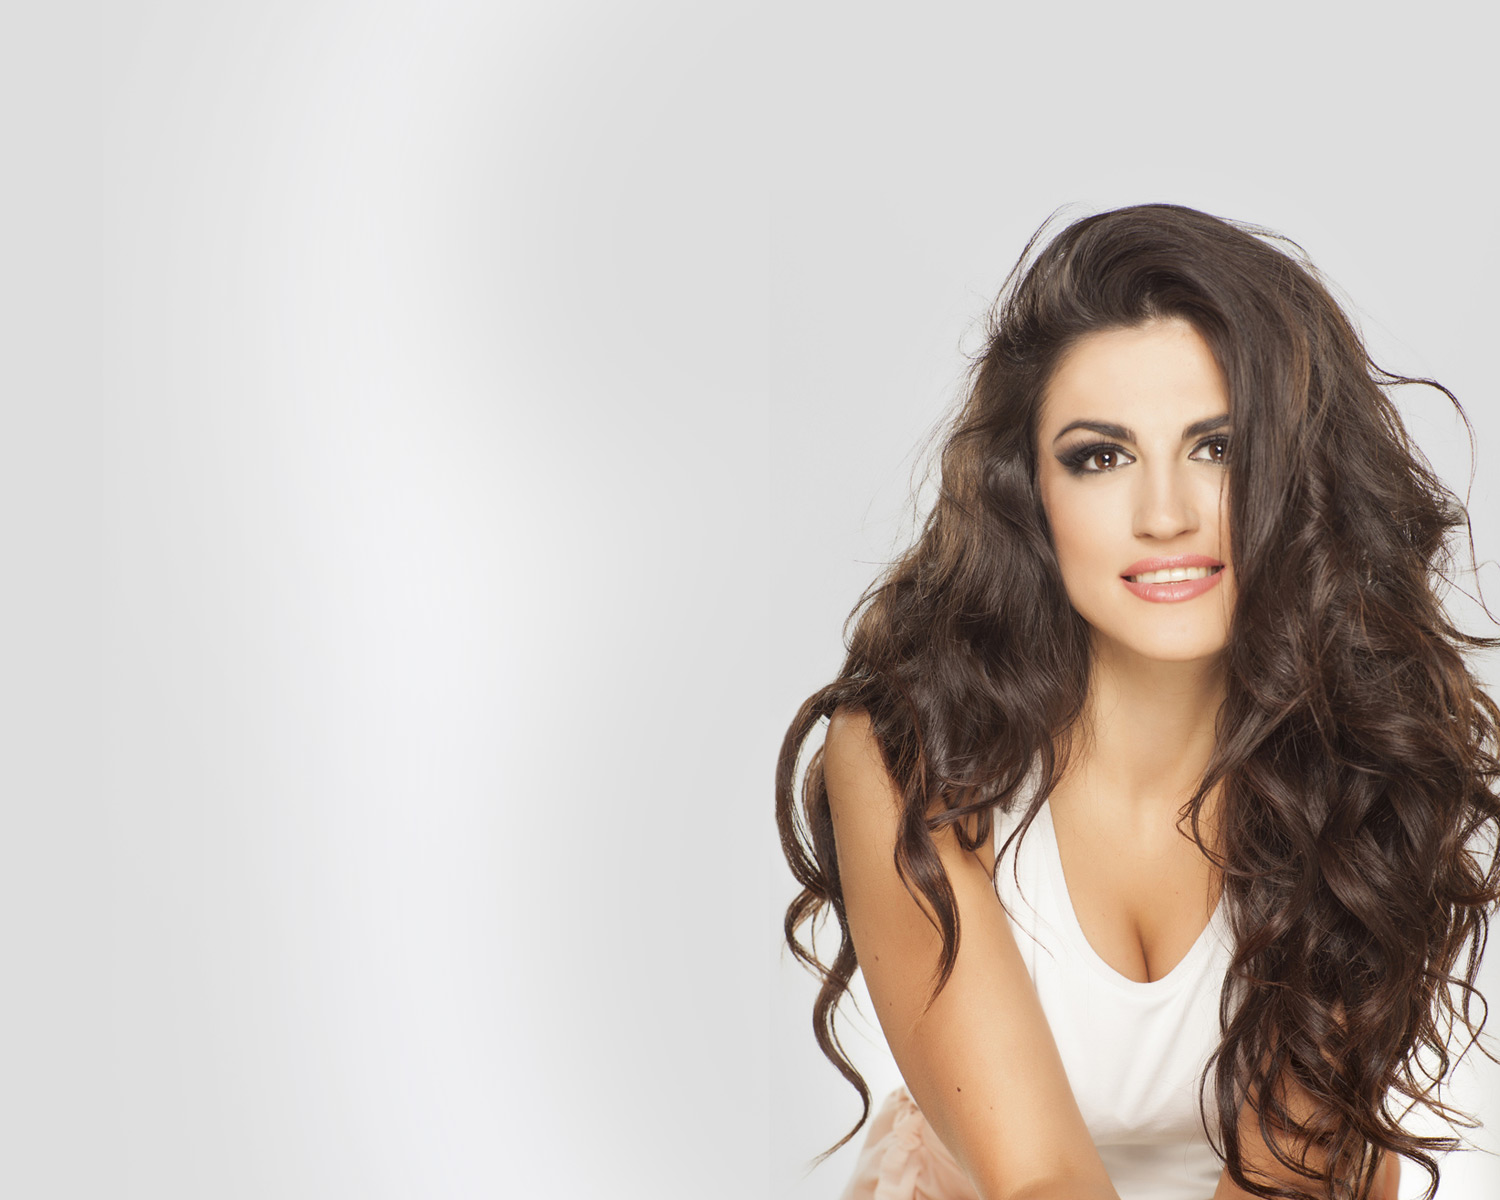 Salon Hair Contact Make An Appointment At Hair Above Salon